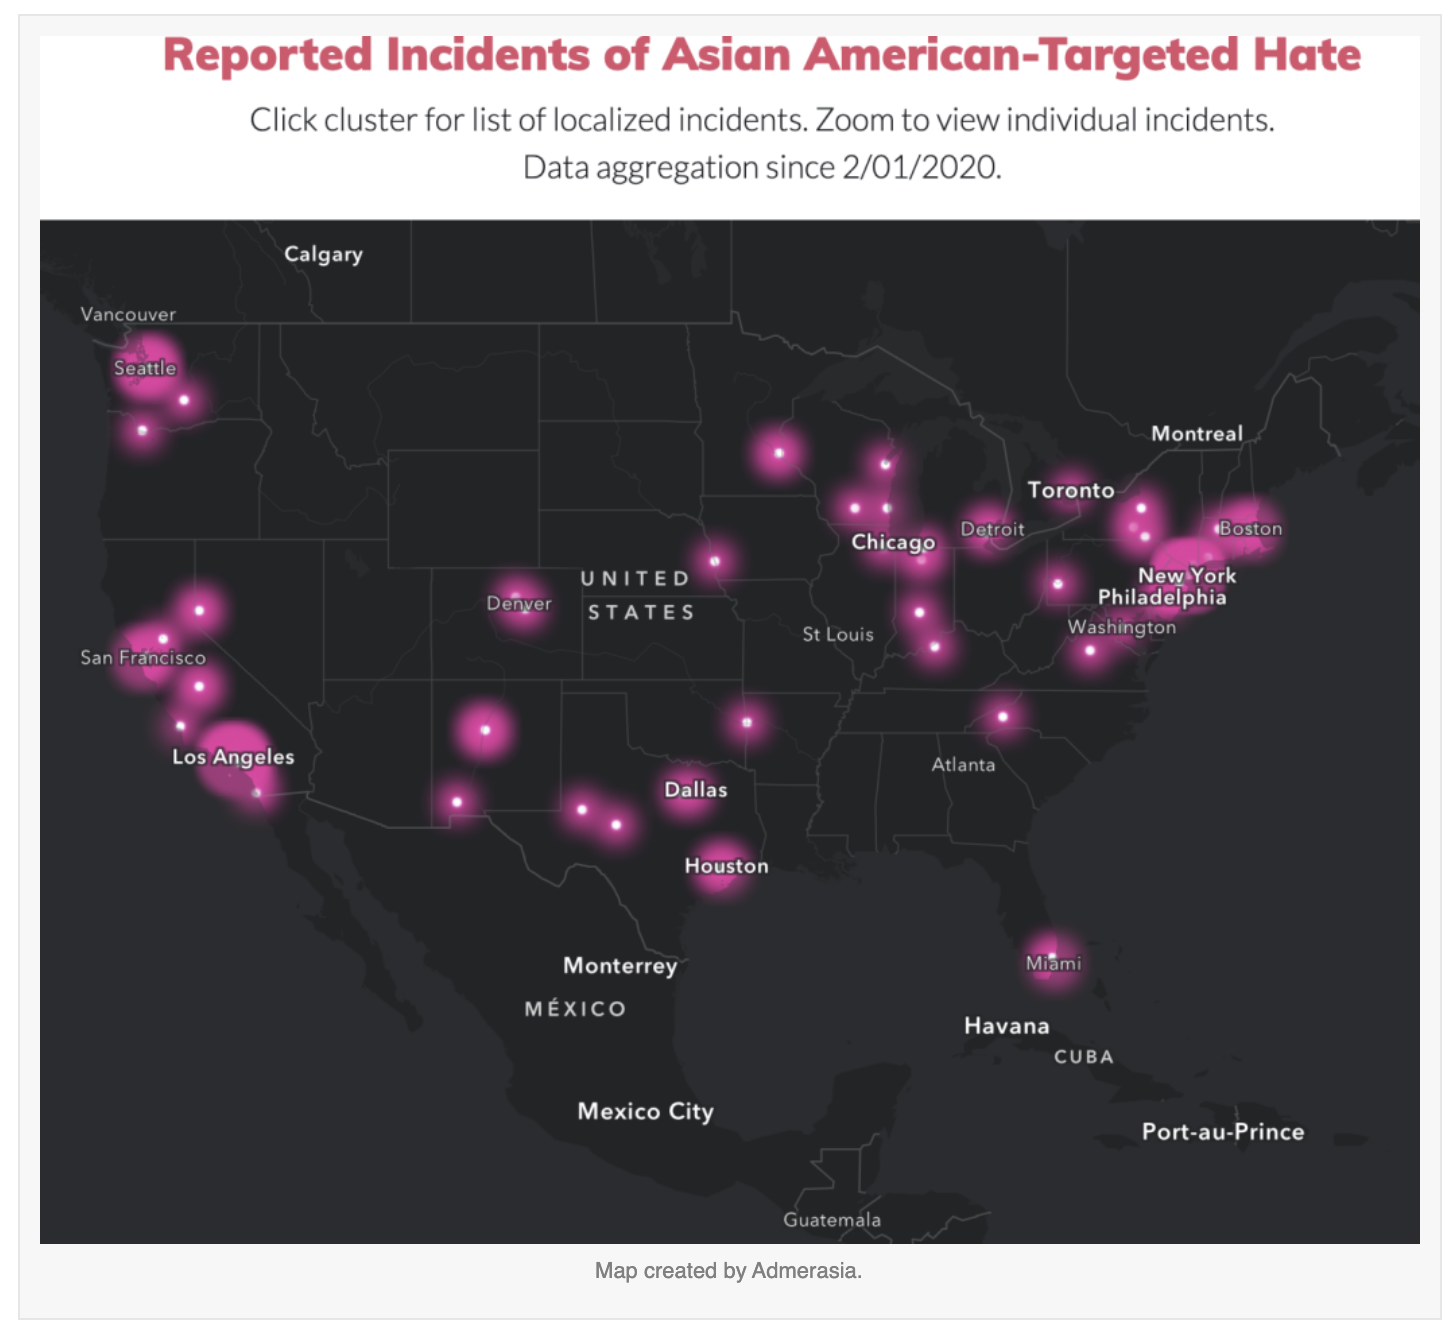 map of reported Asian American targeted violence or harassment incidents since COVID-19